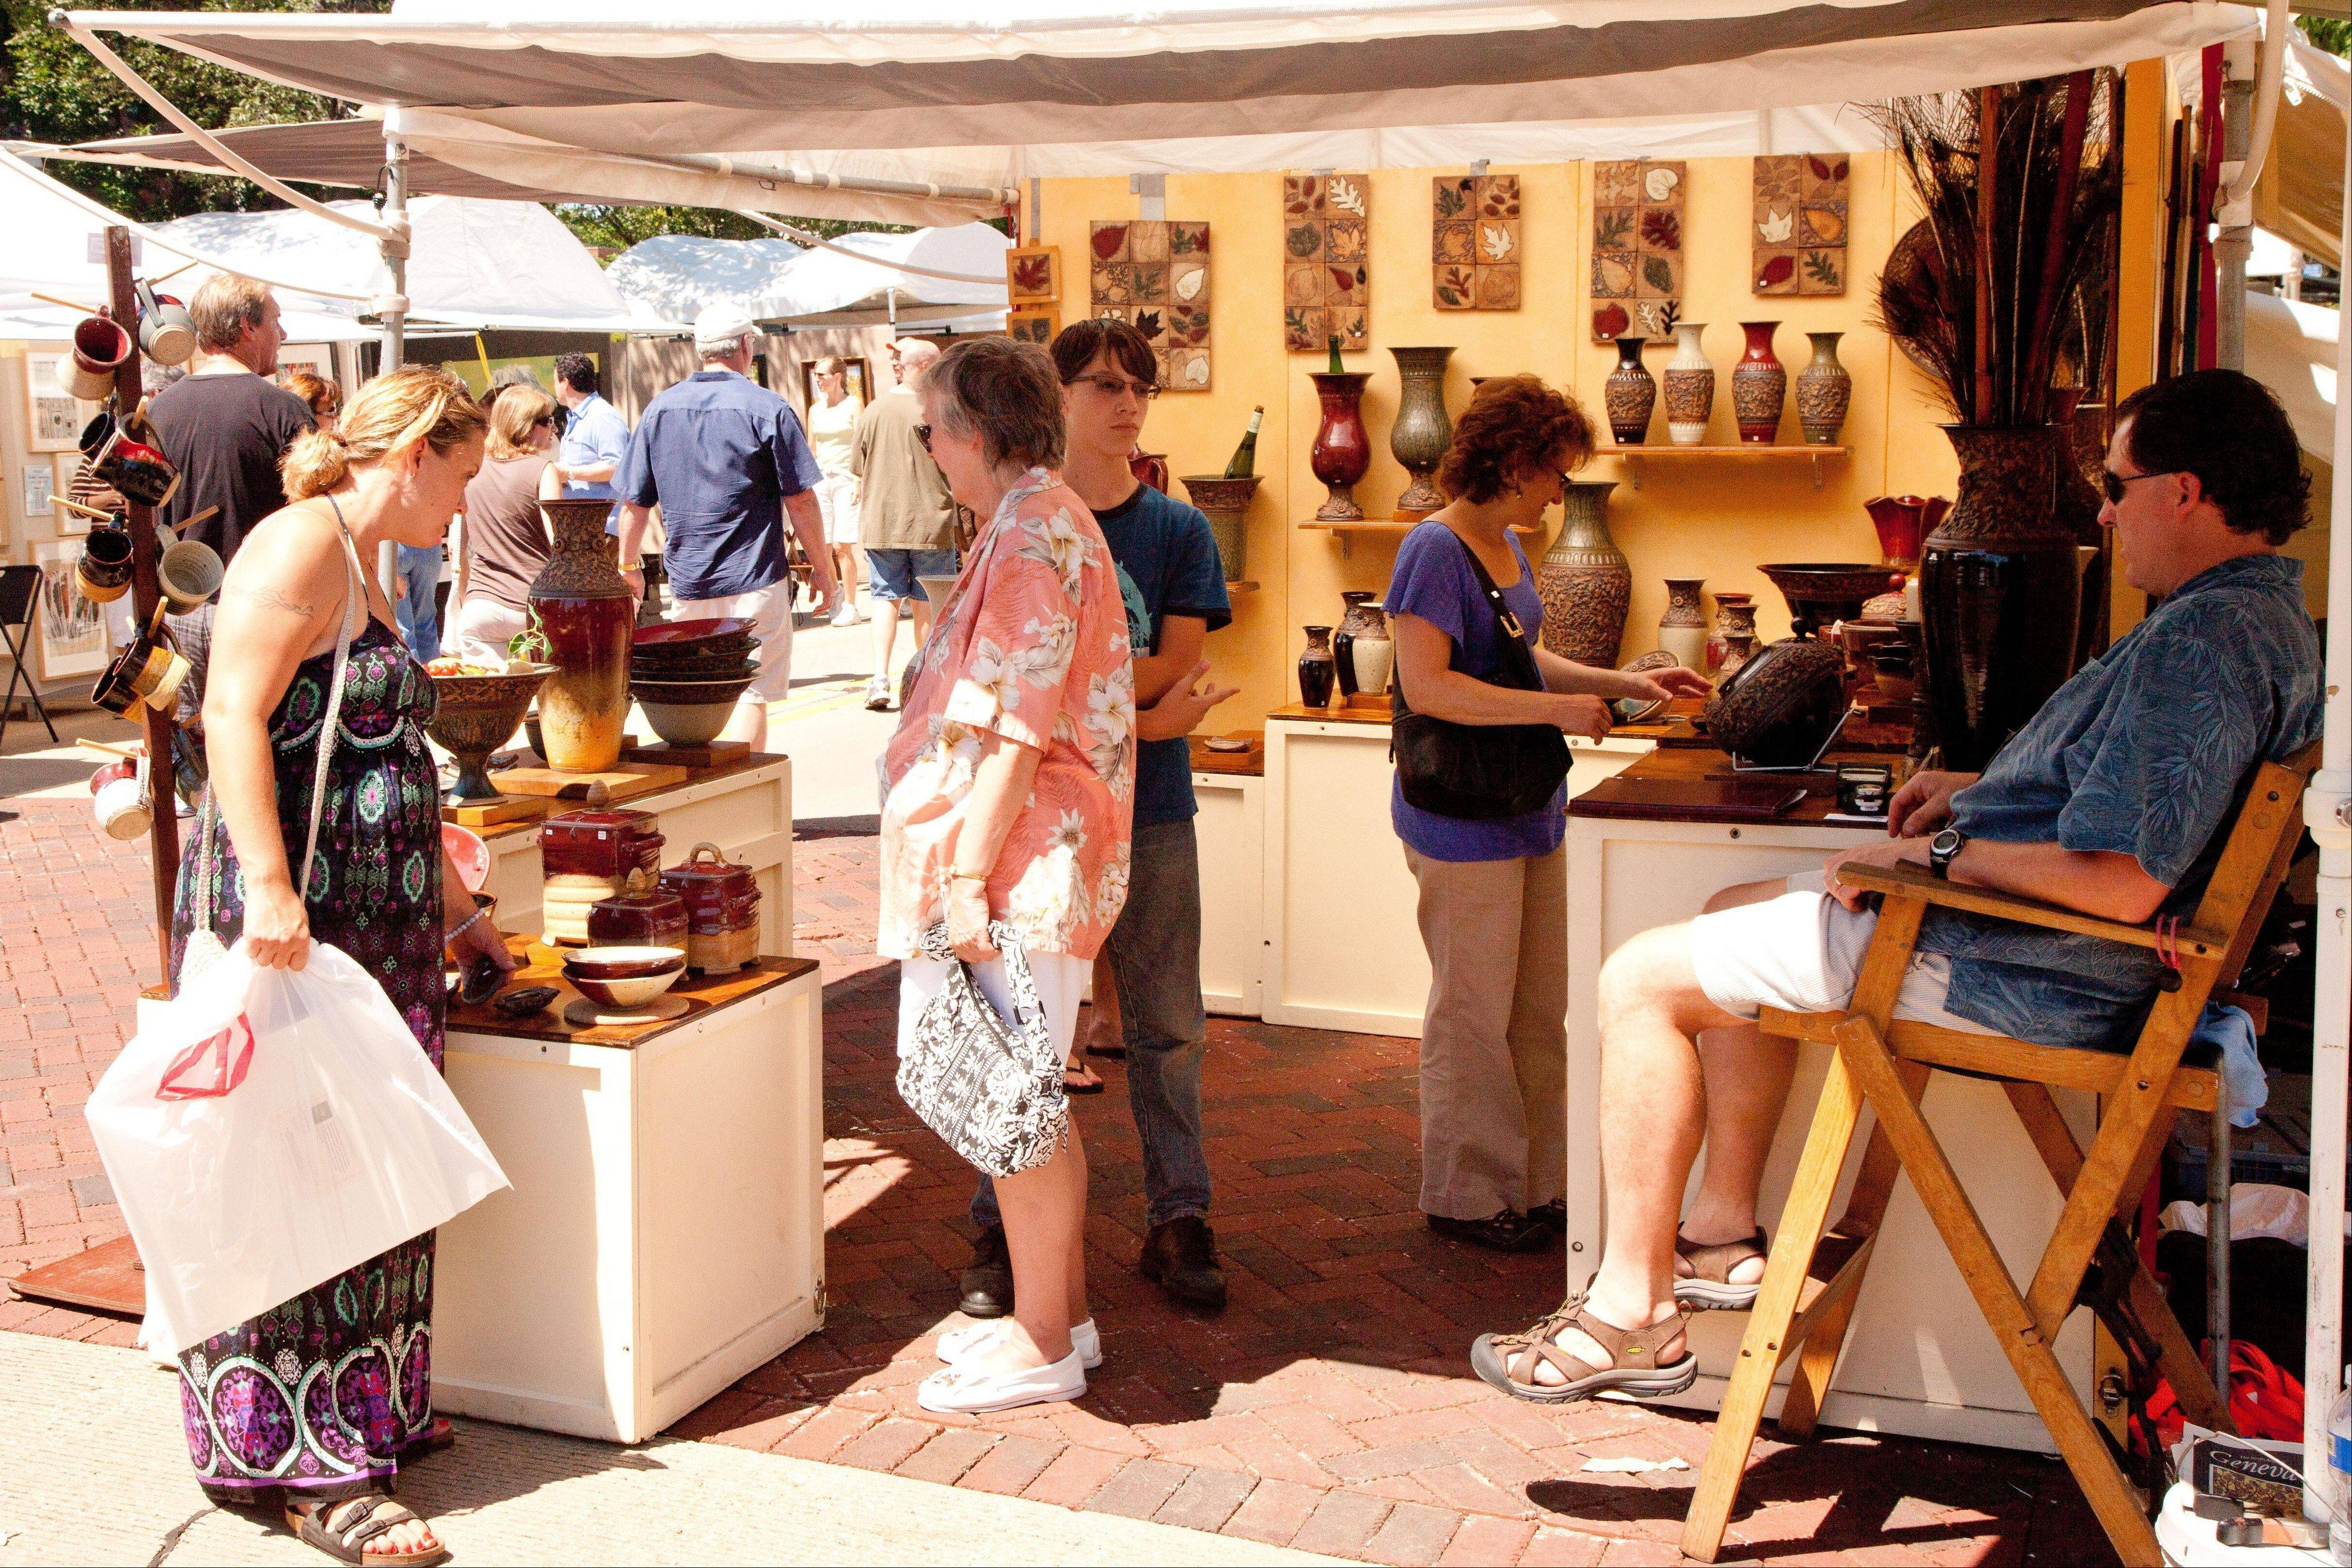 More than 20,000 visitors are expected to attend the Geneva Arts Fair Saturday, July 23, and Sunday, July 24.